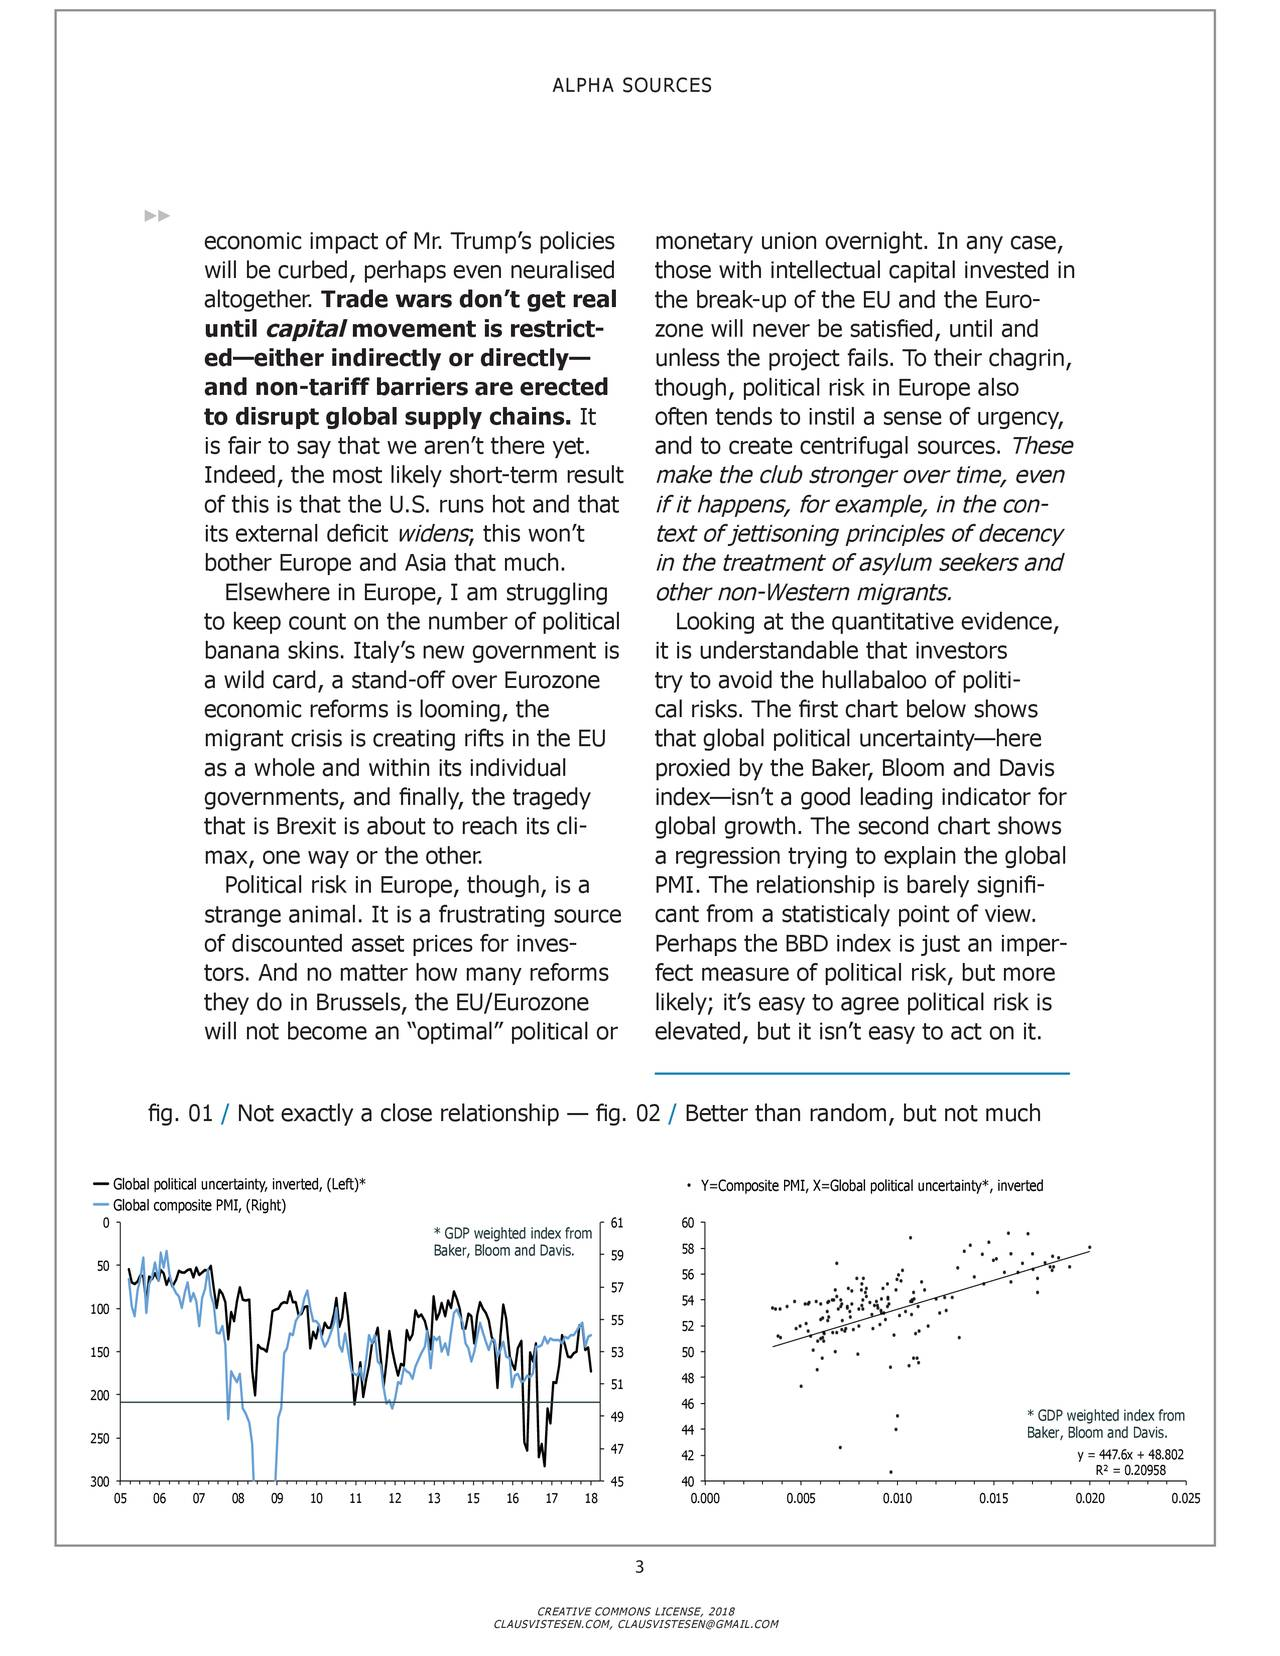 economic impact of Mr. Trump's policies monetary union overnight. In any case, will be curbed, perhaps even neuralised those with intellectual capital invested in altogether. Trade wars don't get real the break-up of the EU and the Euro- until capital movement is restrict- zone will never be satisfied, until and ed—either indirectly or directly— unless the project fails. To their chagrin, and non-tariff barriers are erected though, political risk in Europe also to disrupt global supply chains. It often tends to instil a sense of urgency, is fair to say that we aren't there yet. and to create centrifugal sources. These Indeed, the most likely short-term result make the club stronger over time, even of this is that the U.S. runs hot and that if it happens, for example, in the con - its external deficit widens; this won't text of jettisoning principles of decency bother Europe and Asia that much. in the treatment of asylum seekers and Elsewhere in Europe, I am struggling other non-Western migrants. to keep count on the number of political Looking at the quantitative evidence, banana skins. Italy's new government is it is understandable that investors a wild card, a stand-off over Eurozone try to avoid the hullabaloo of politi - economic reforms is looming, the cal risks. The first chart below shows migrant crisis is creating rifts in the EU that global political uncertainty—here as a whole and within its individual proxied by the Baker, Bloom and Davis governments, and finally, the tragedy index—isn't a good leading indicator for that is Brexit is about to reach its cli - global growth. The second chart shows max, one way or the other. a regression trying to explain the global Political risk in Europe, though, is a PMI. The relationship is barely signifi- strange animal. It is a frustrating source cant from a statisticaly point of view. of discounted asset prices for inves- Perhaps the BBD index is just an imper - tors. And no matter how many reforms fect measure of po